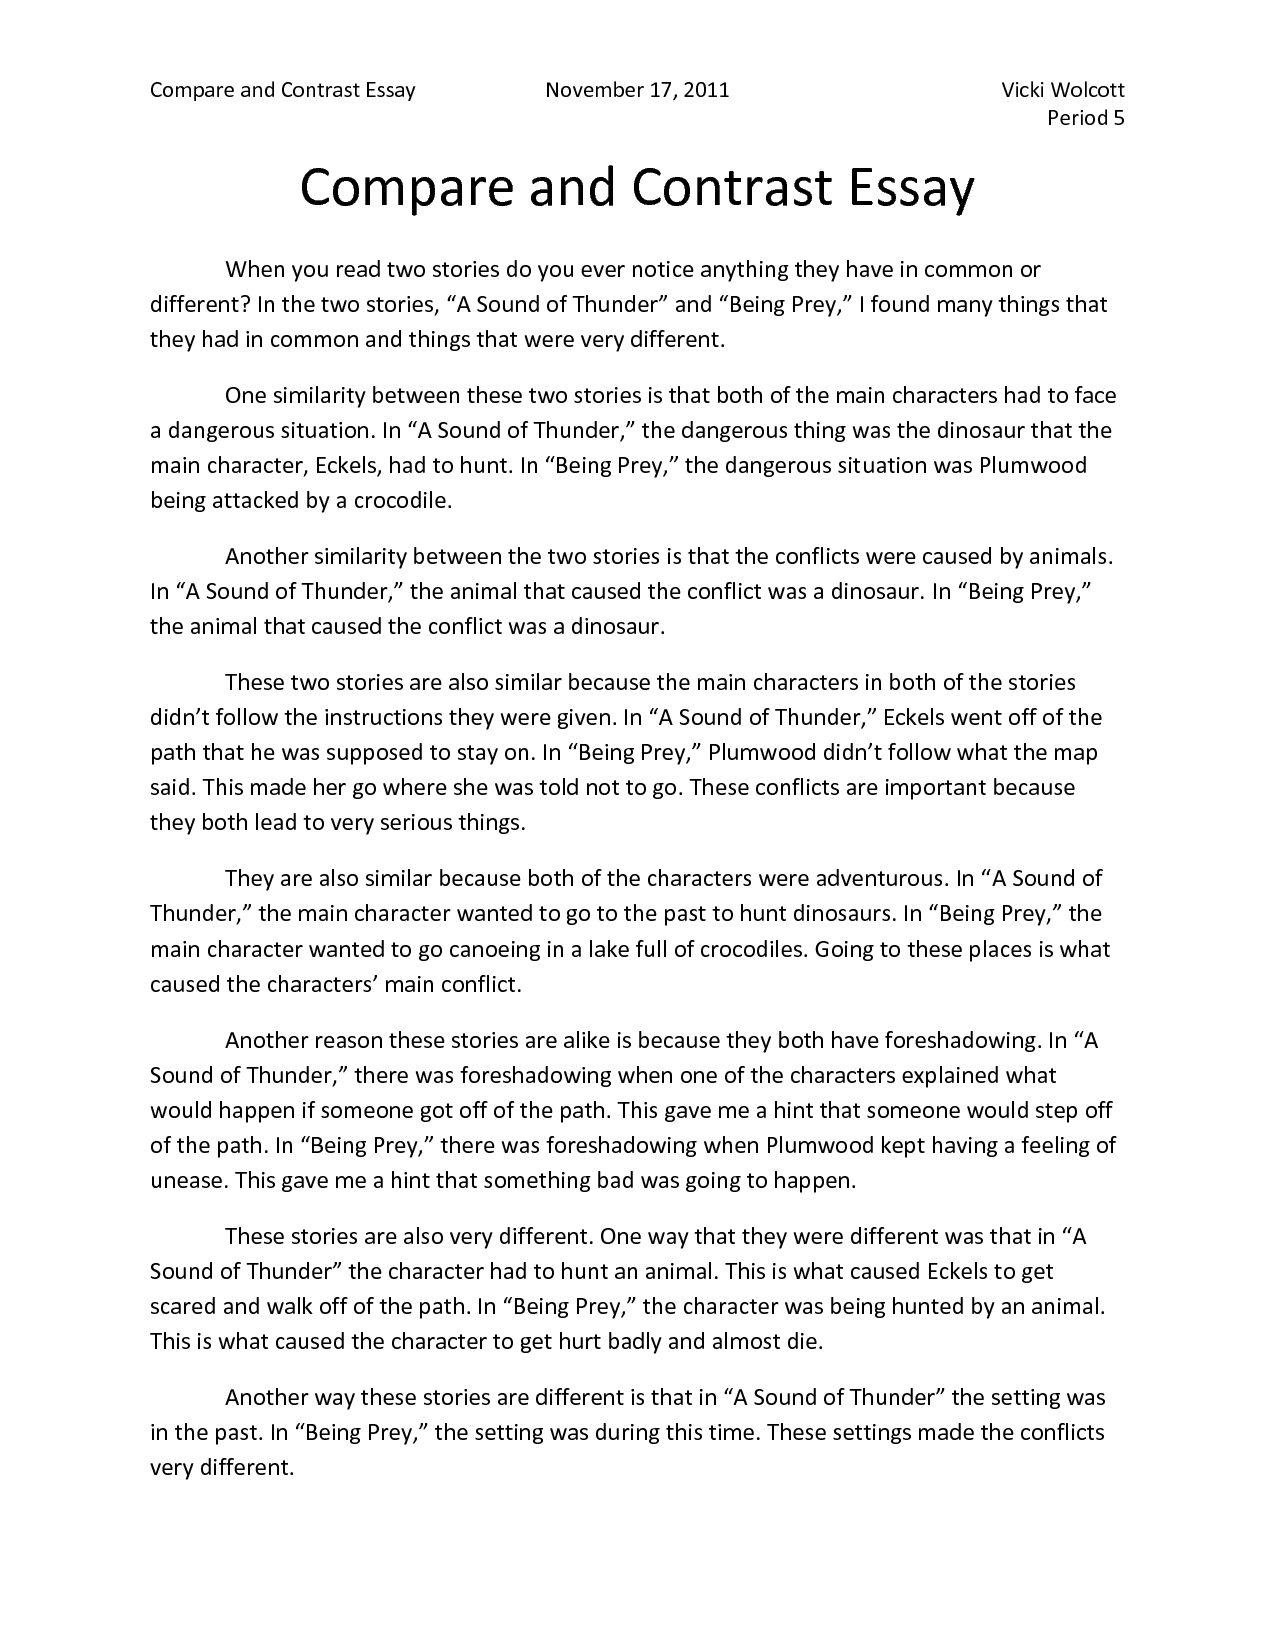 004 Compare And Contrast Basic How To Start Comparative Essay Beautiful A Writing Comparison Begin Thesis Full